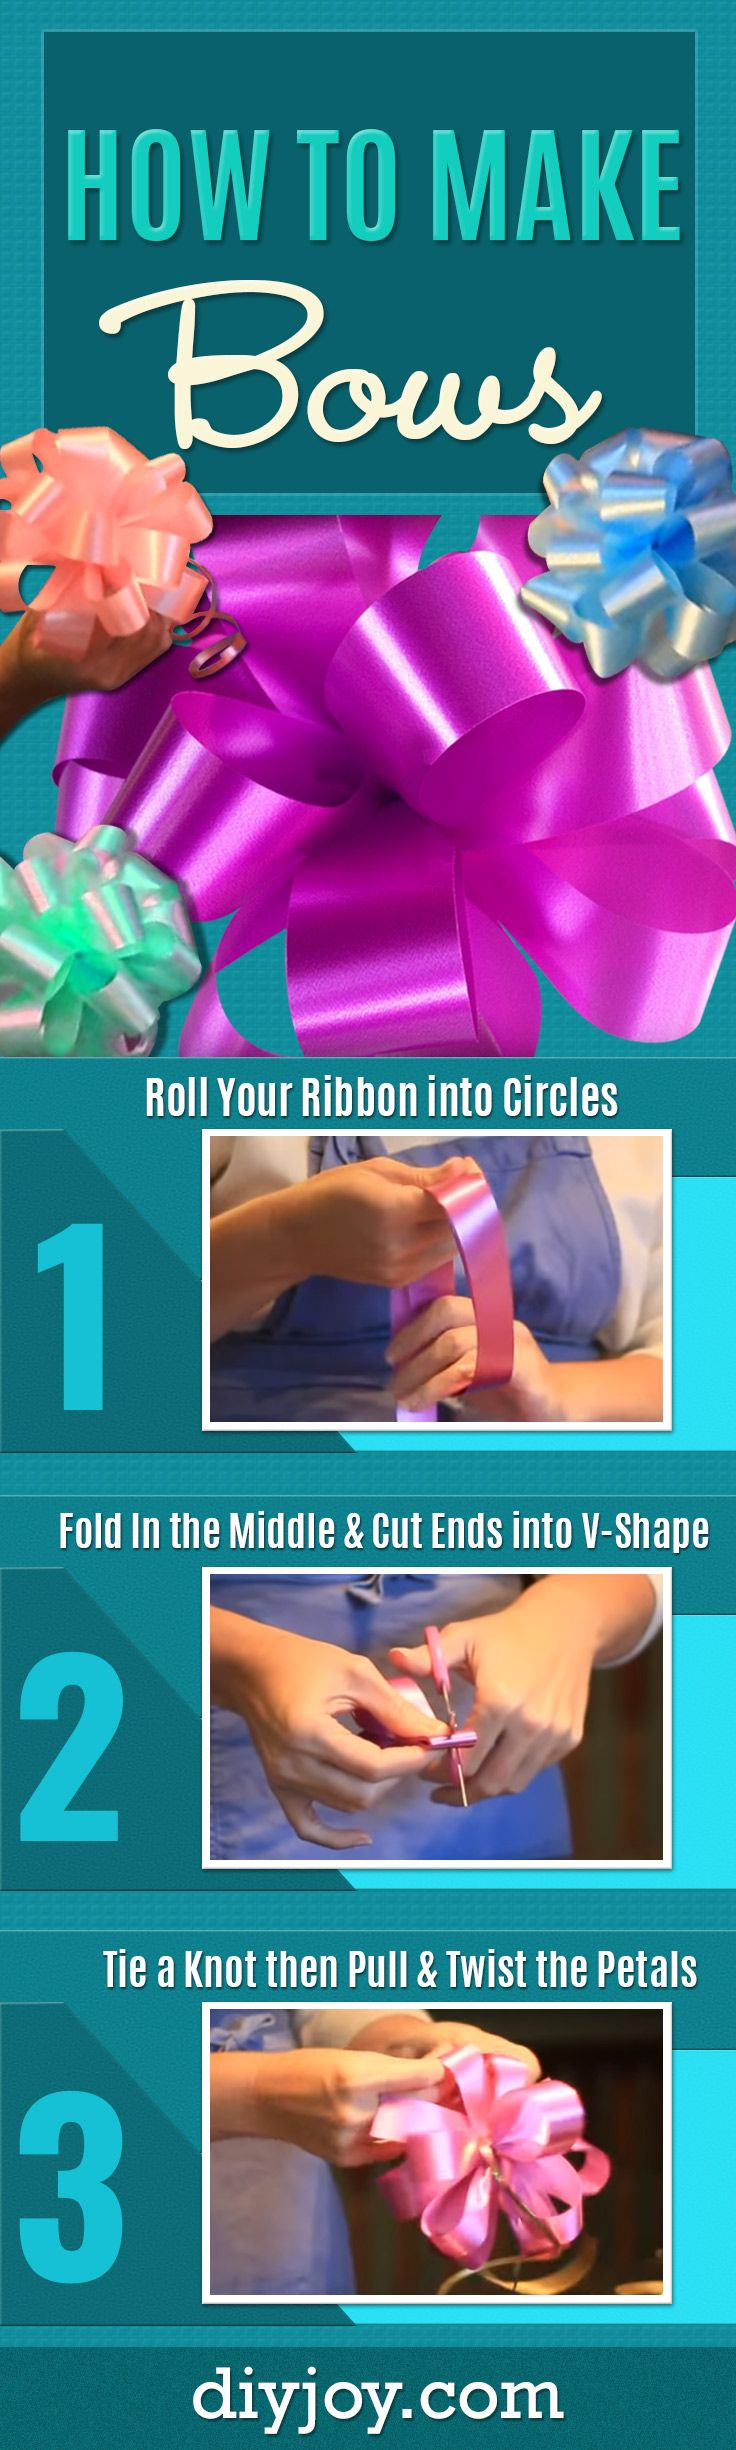 How To Make Bows - Learn How To Tie a Bow for DIY Christmas Presents and Holiday Gifts - Easy Bow Making Tutorial with Step by Step Instructions and Video - Gift Wrapping Made Simple With Big, Beautiful Bows - Creative Crafts and DIY Projects